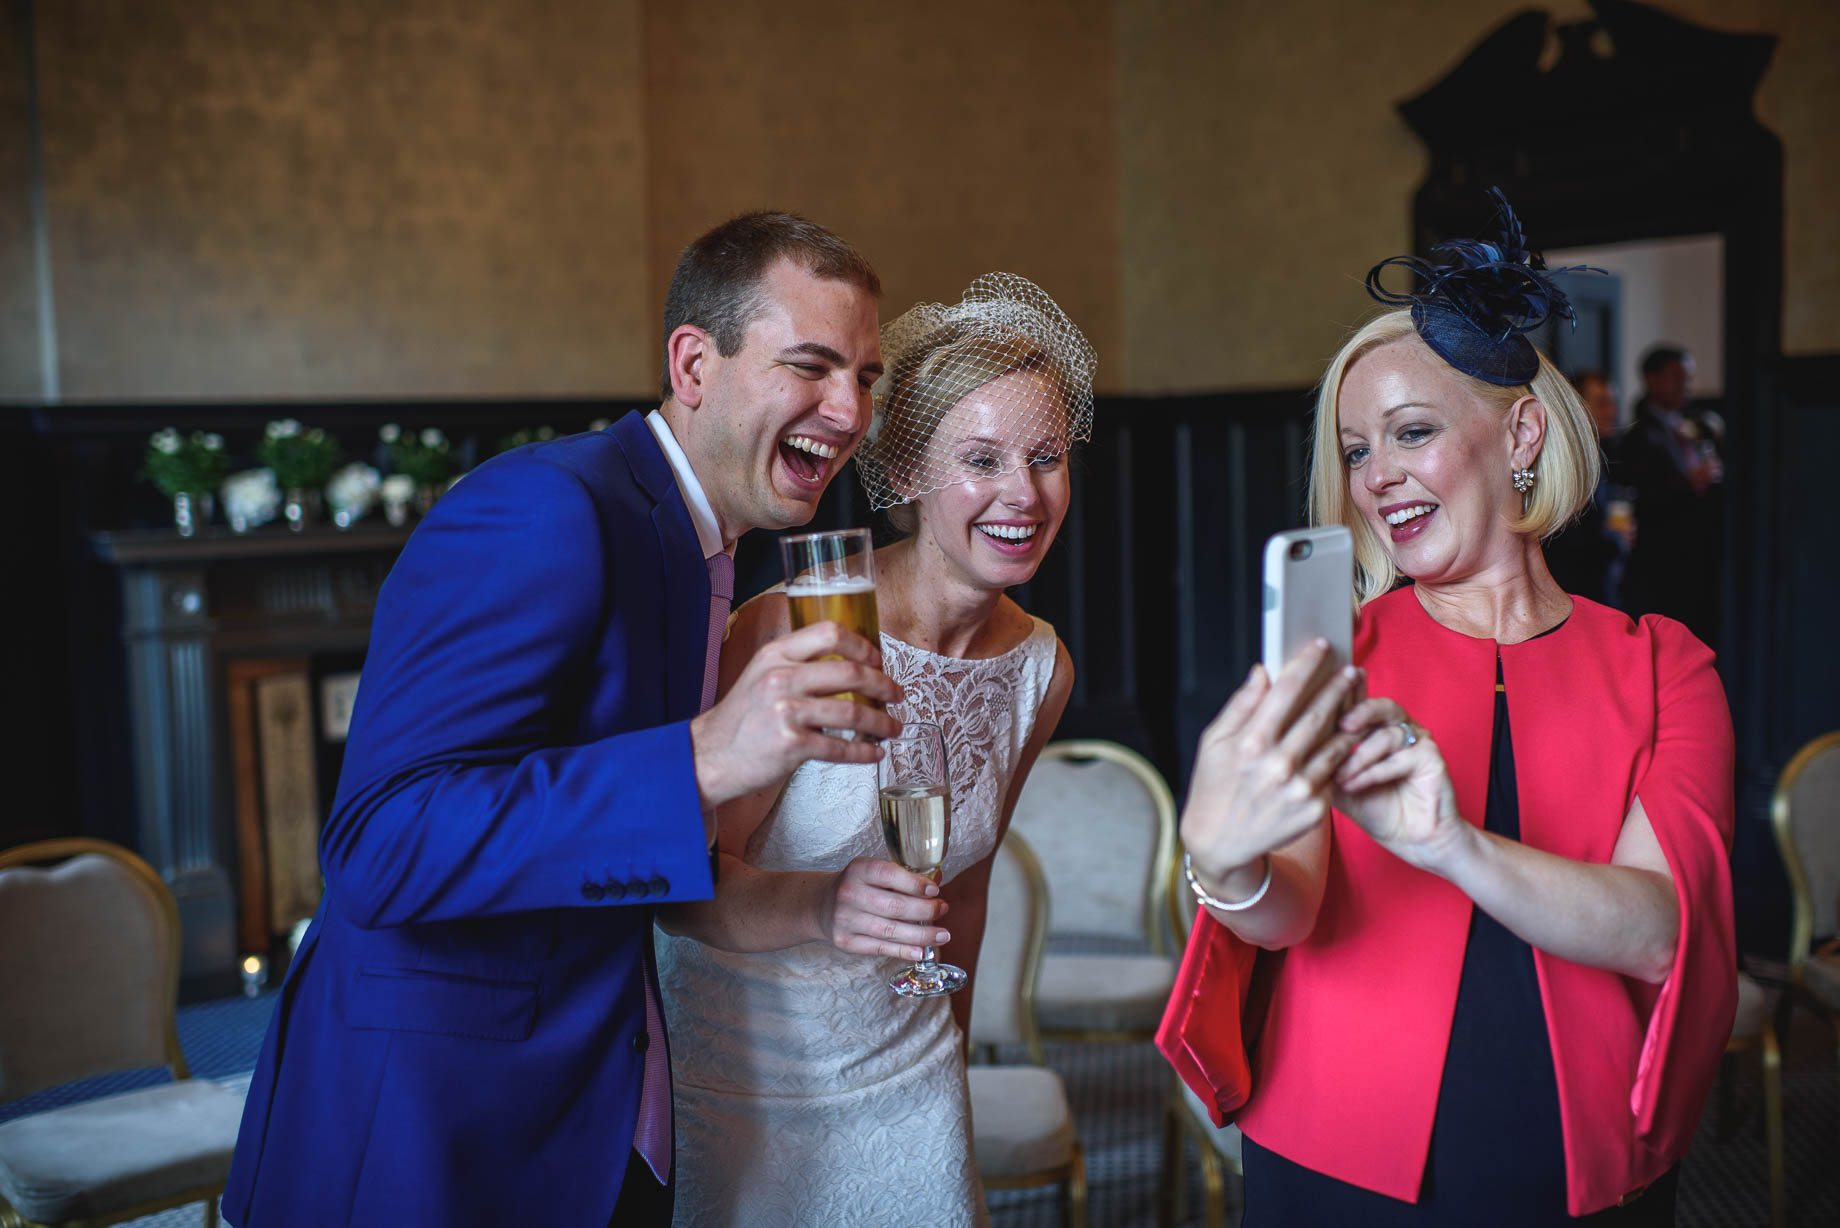 Bllomsbury House wedding photography in London - Katie and Taylor (65 of 156)